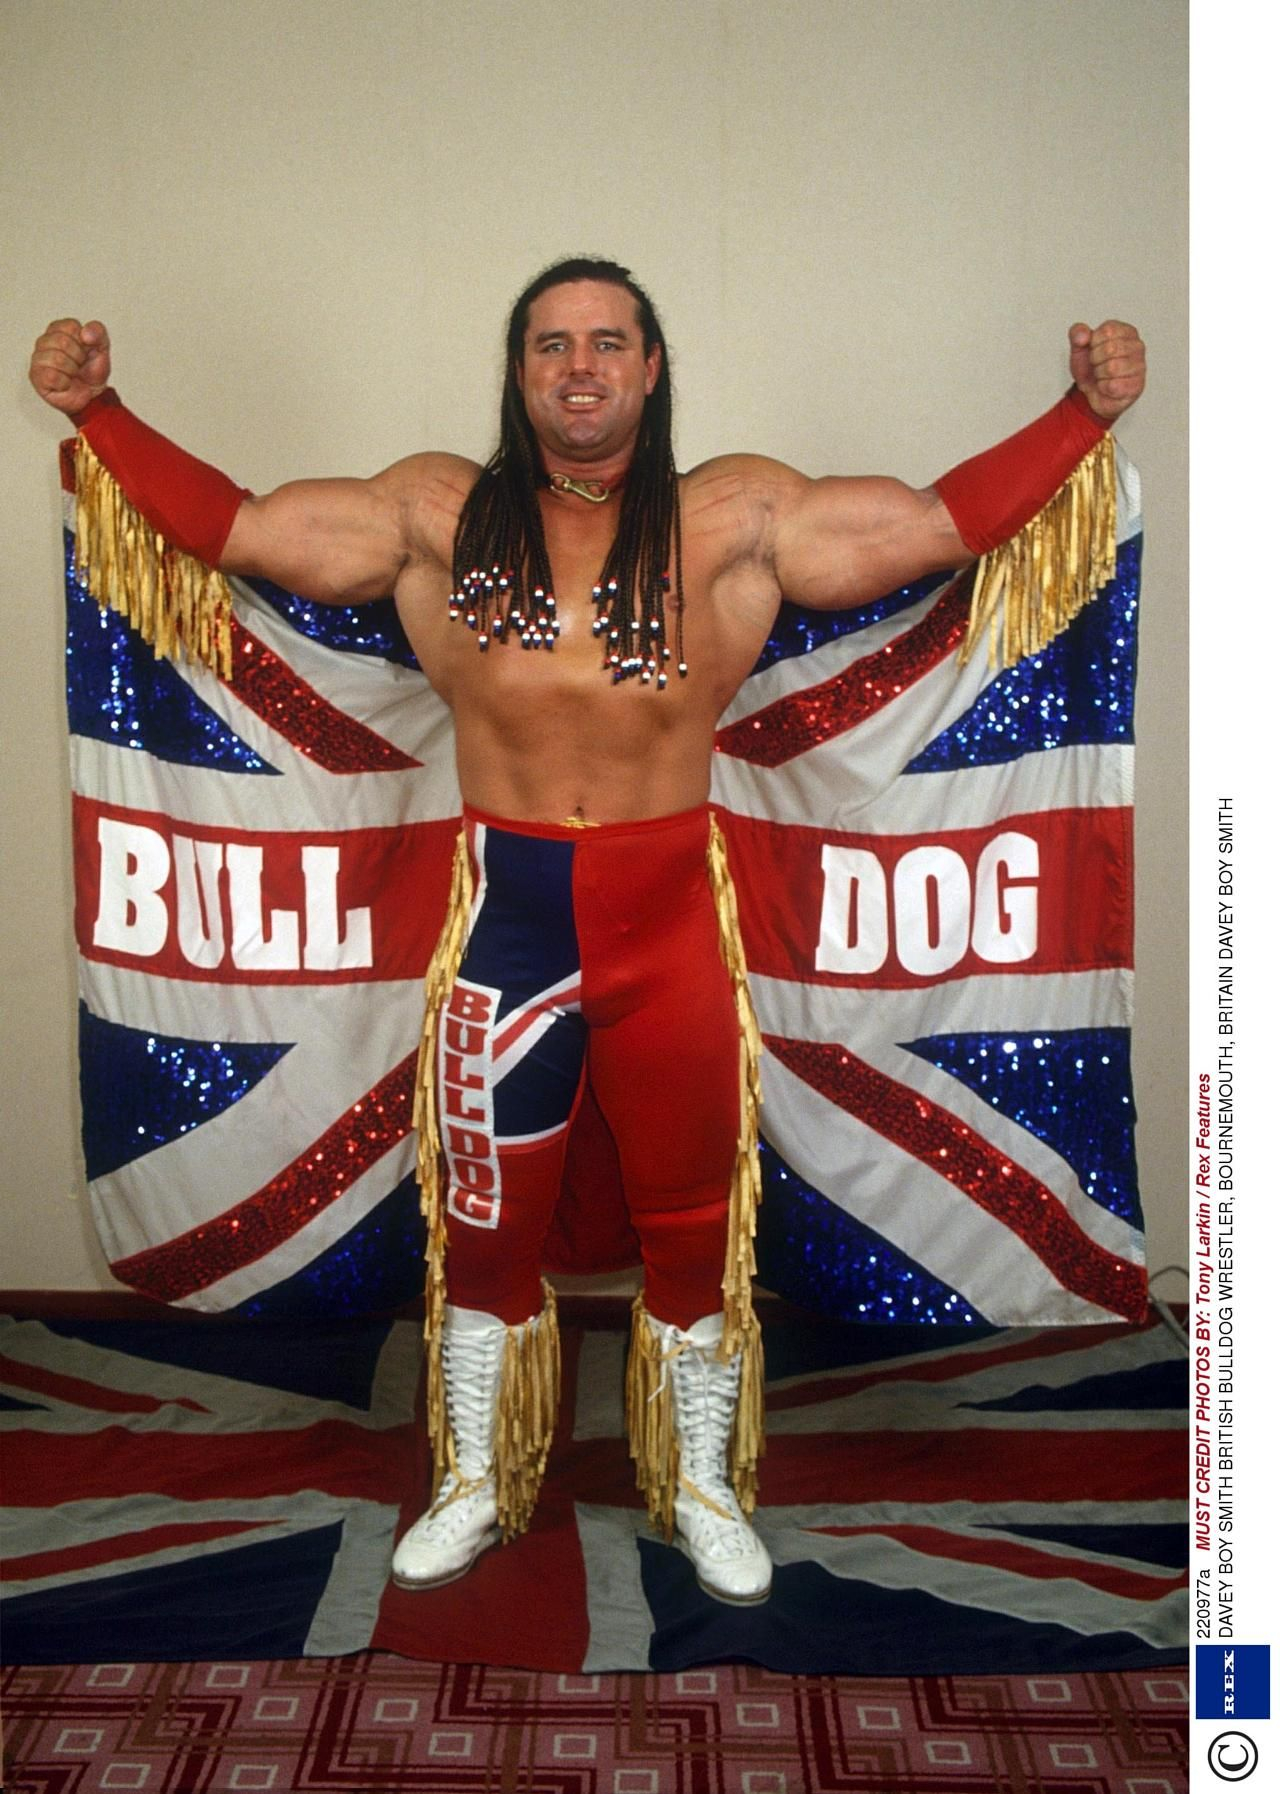 "British Bulldog"" Davey Boy Smith 